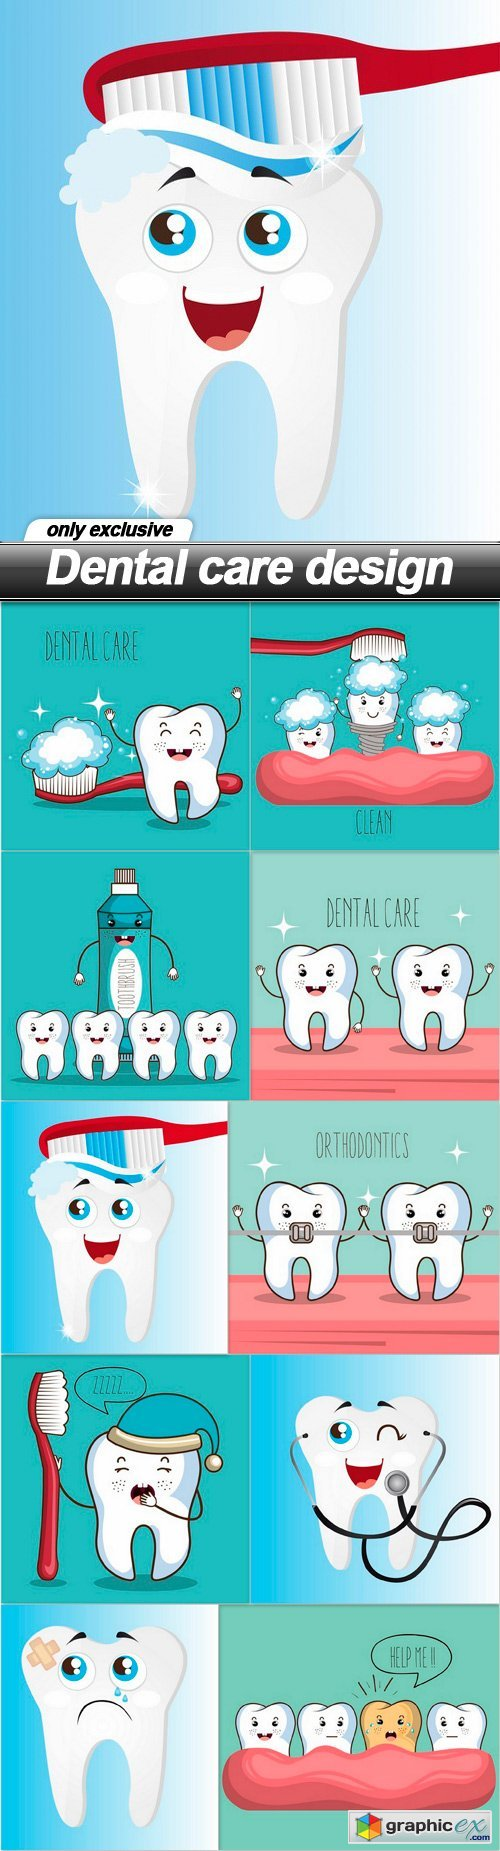 Dental care design - 10 EPS